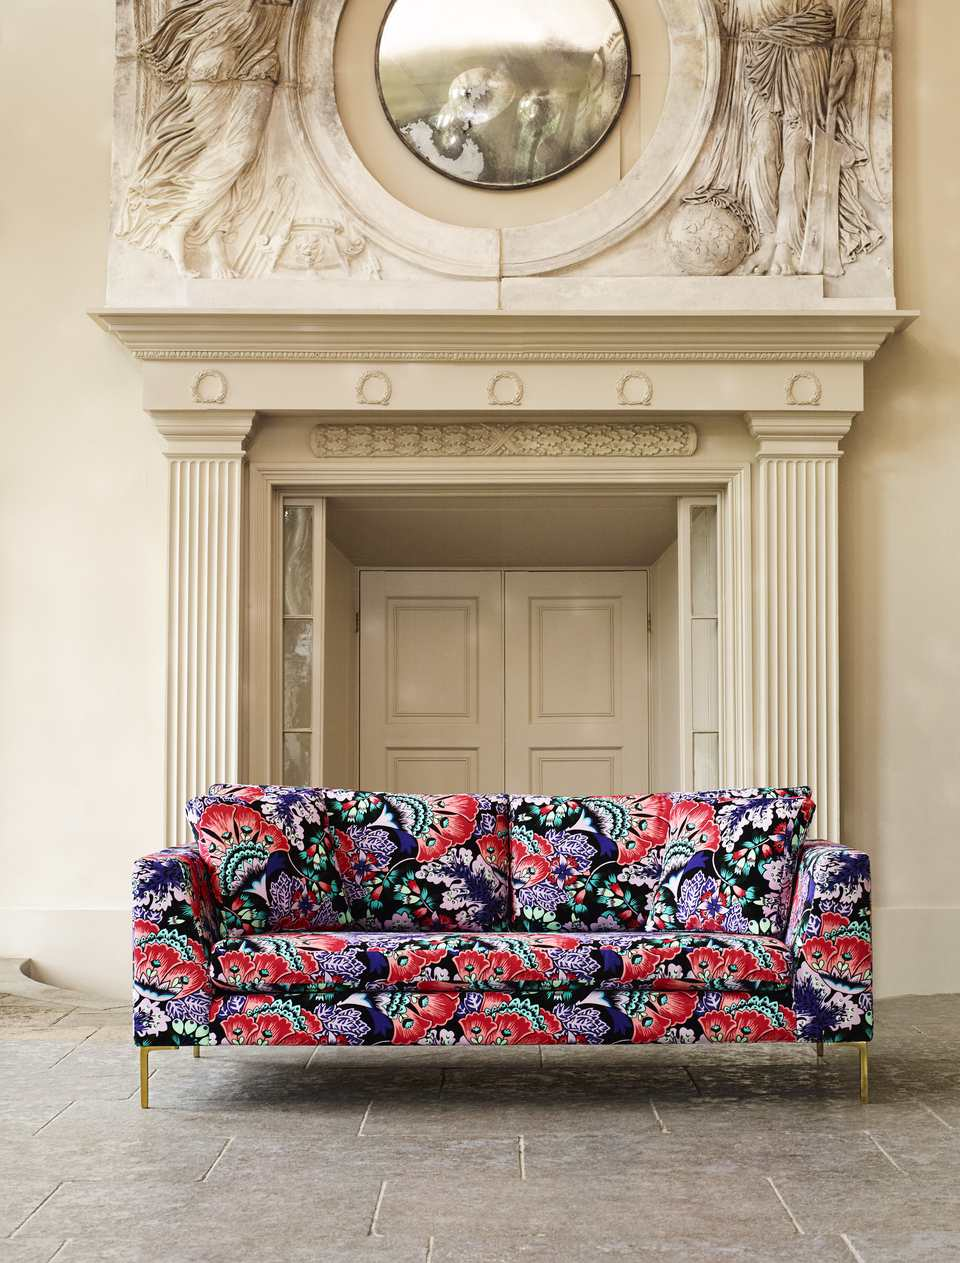 Liberty of London Anthropologie furniture collection sofa